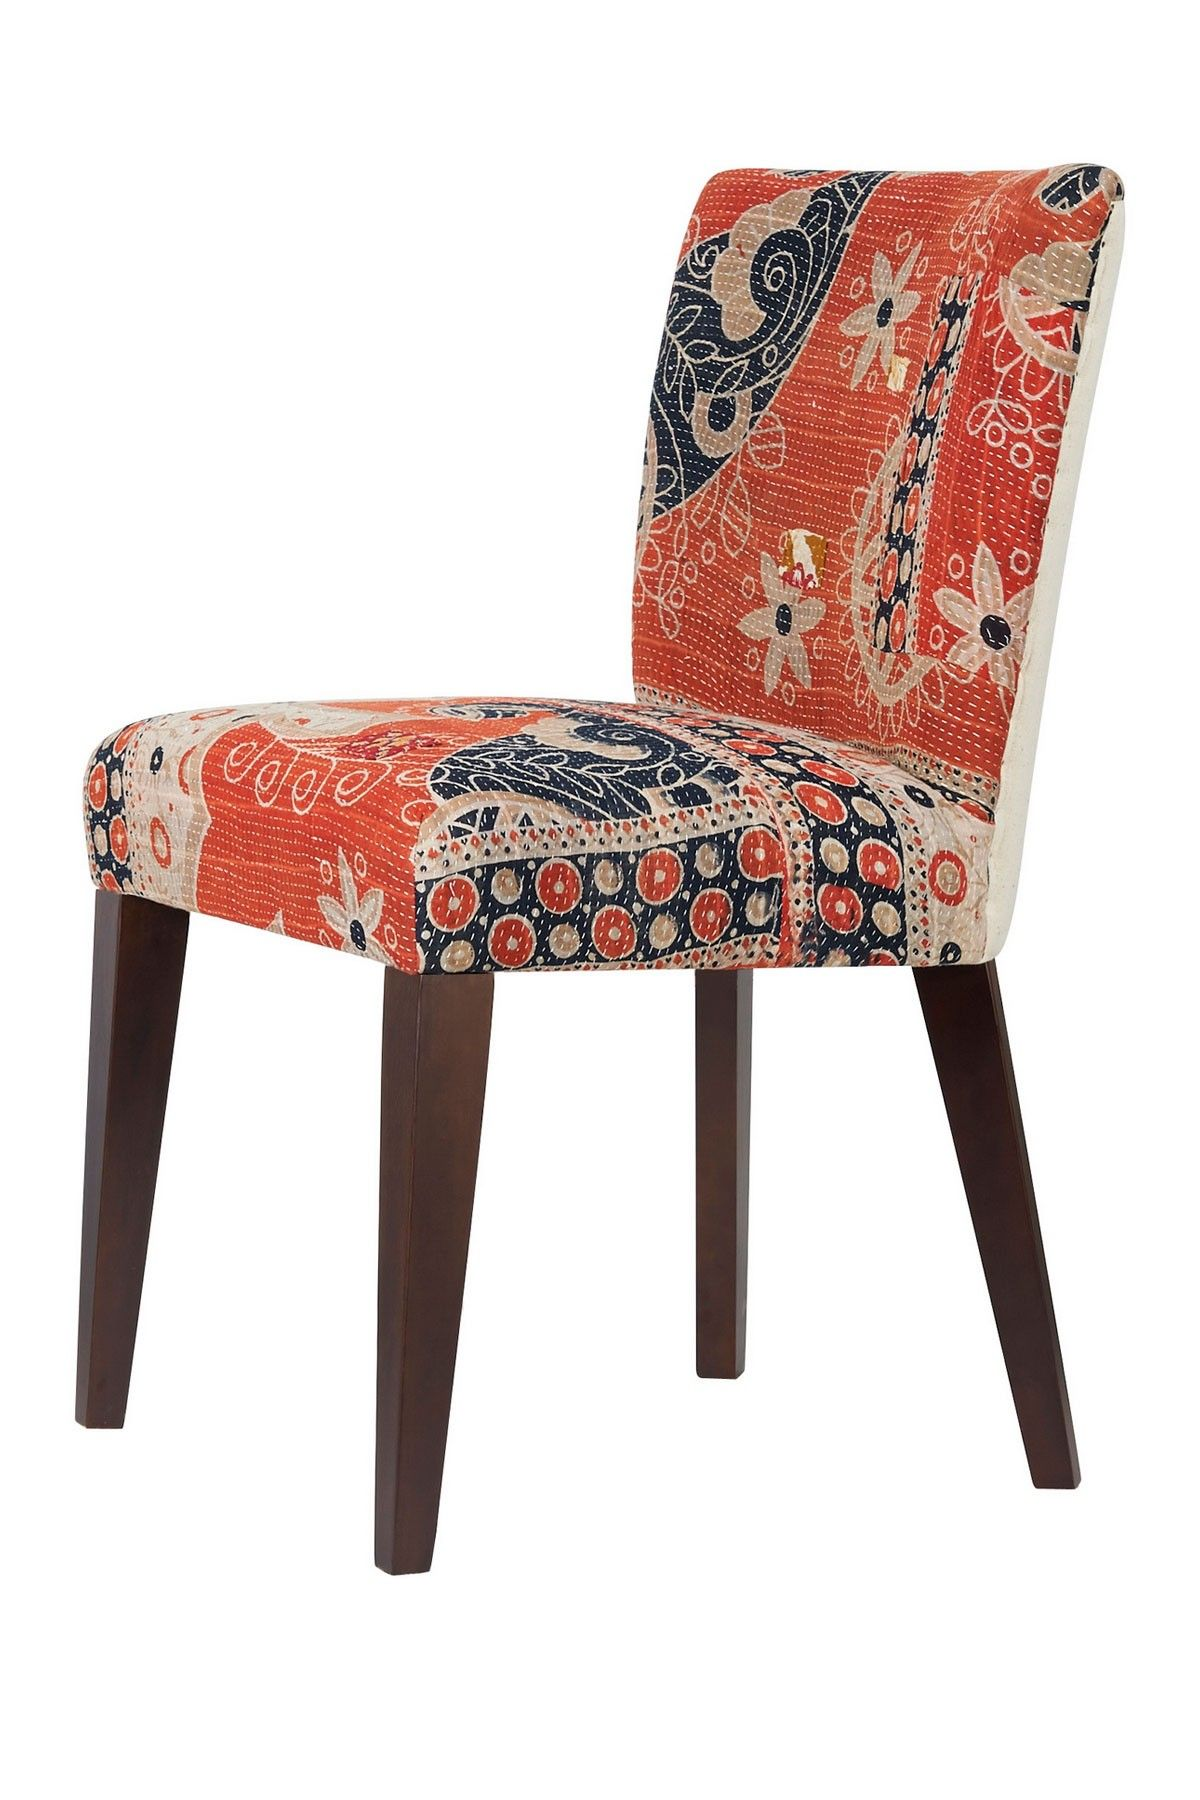 One of a Kind Vintage Kantha Blanket Small Accent Chair | Take A ...